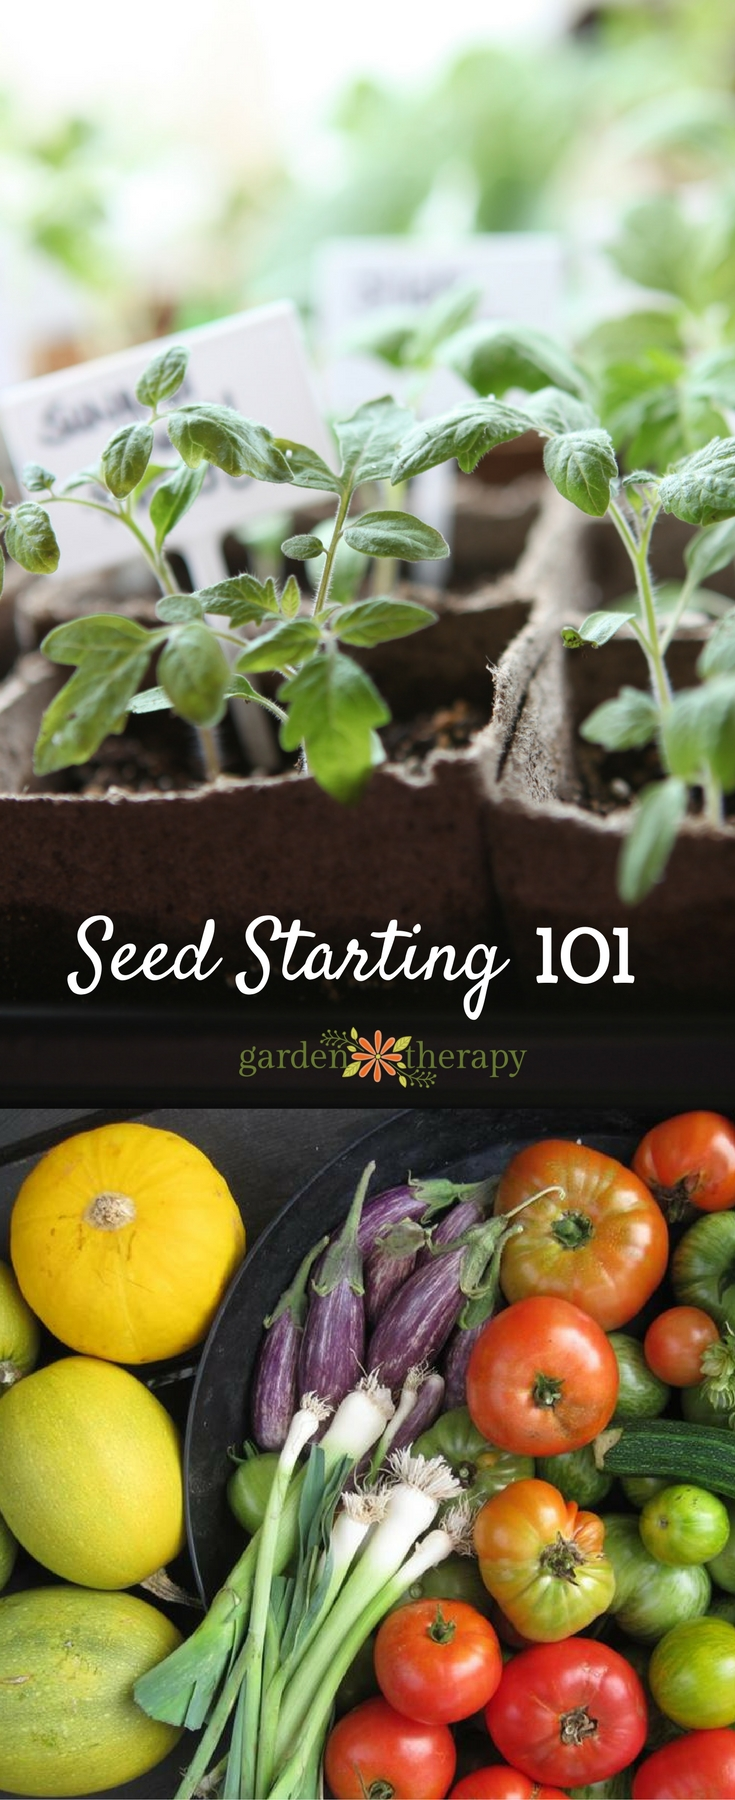 Seed starting 101 the basics for home seed starting